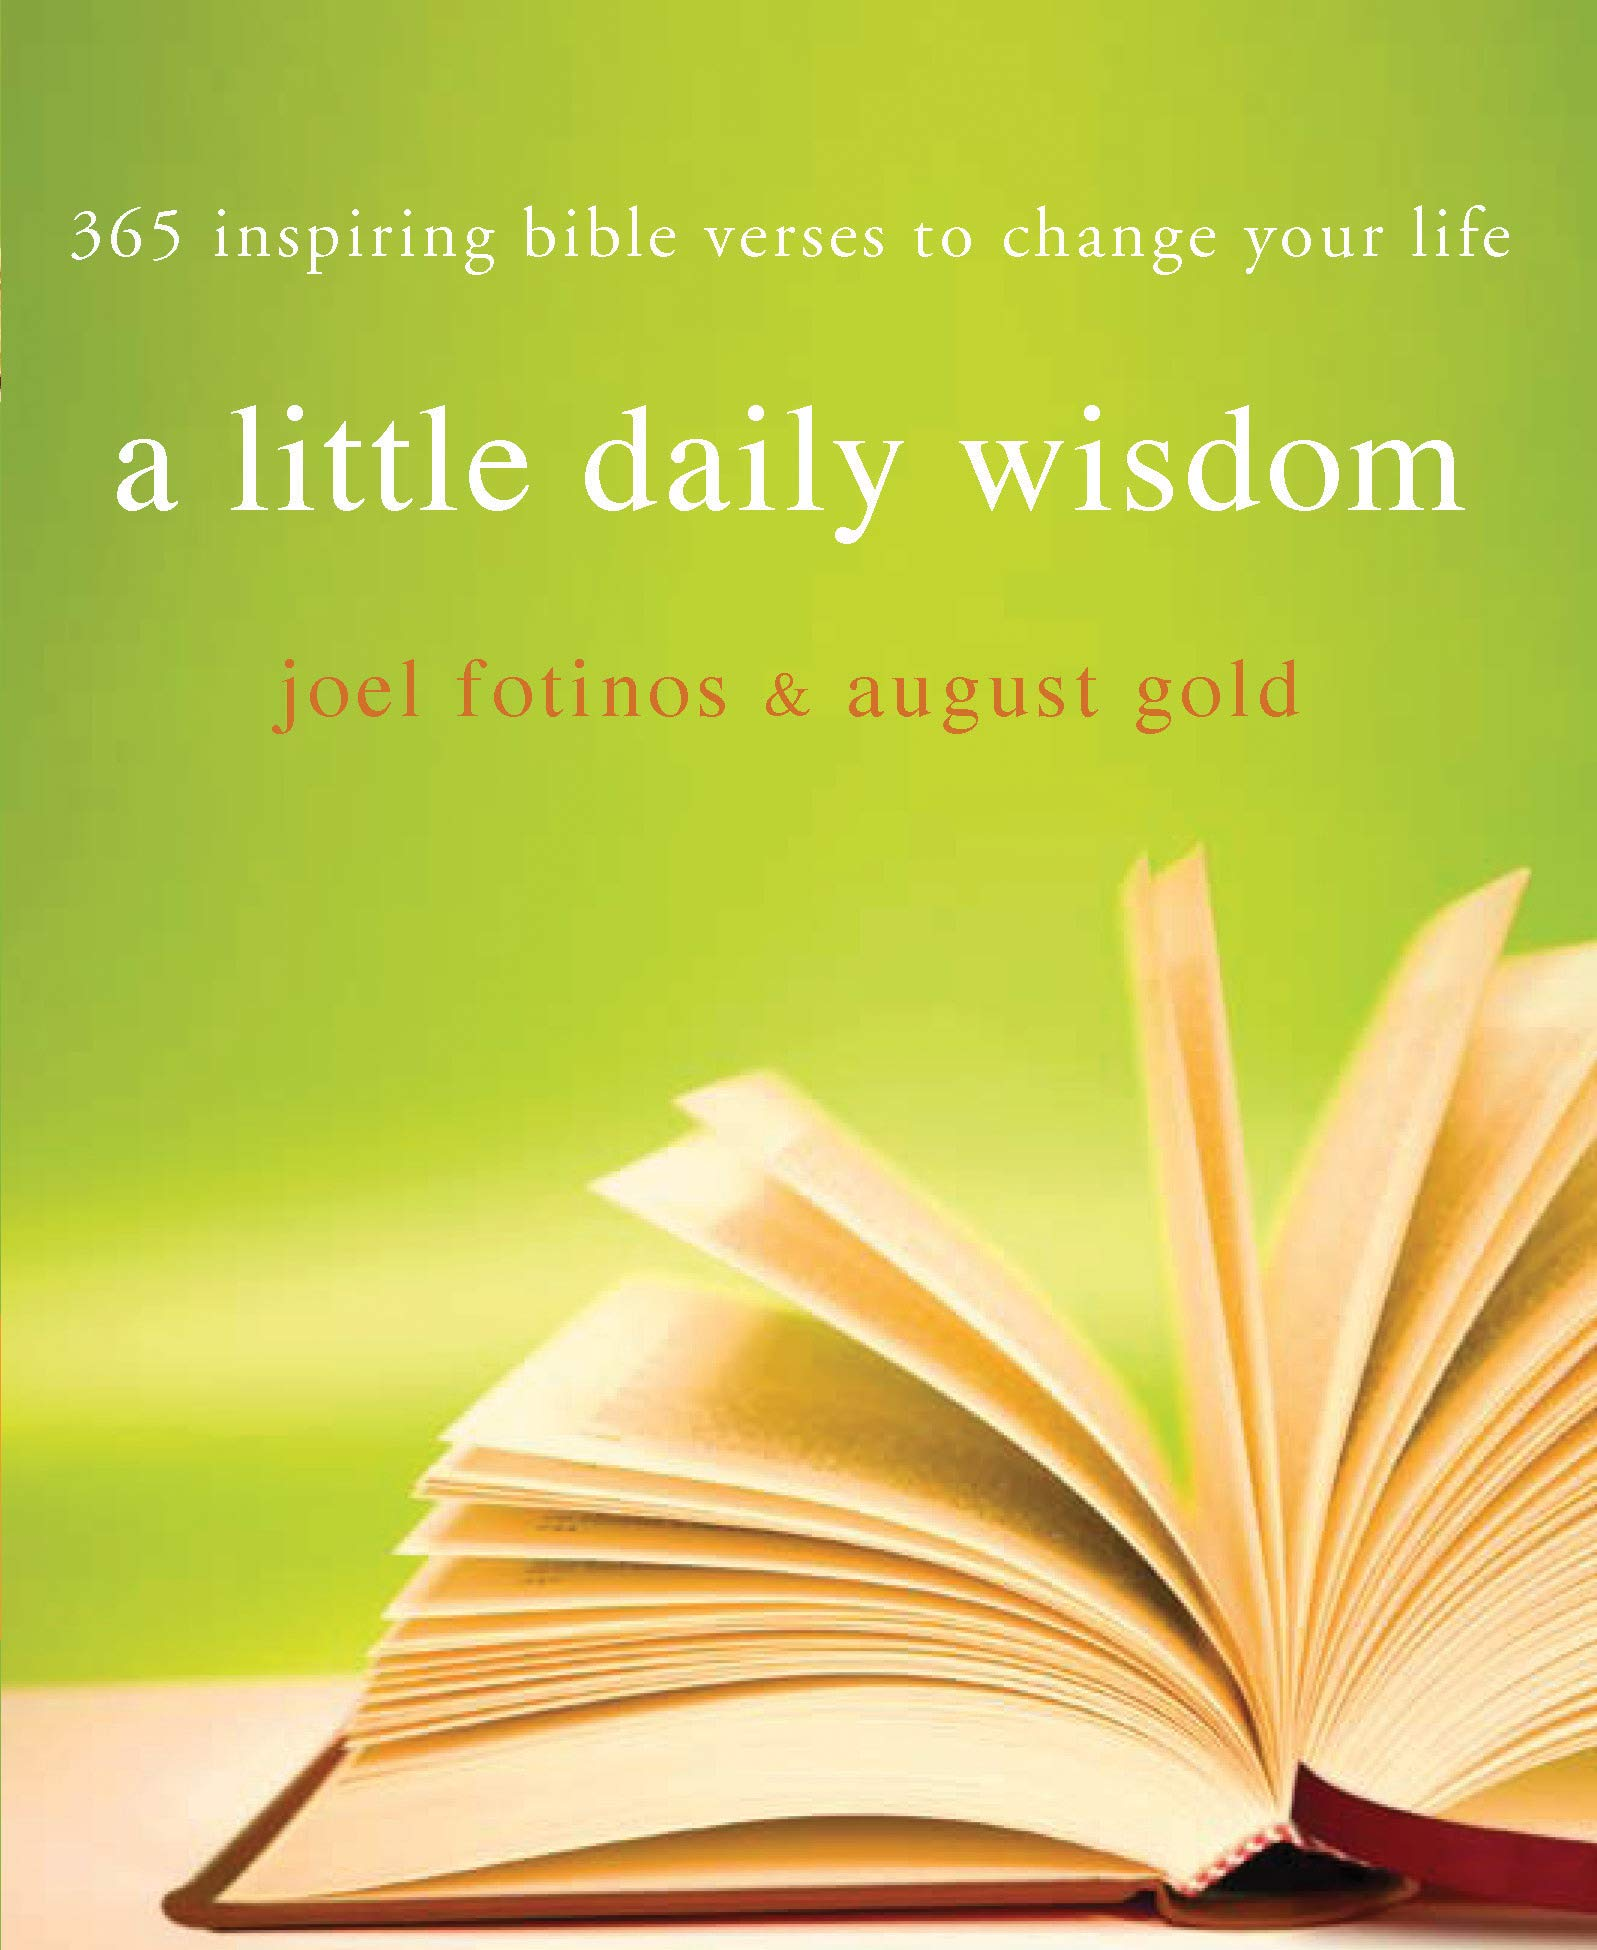 Little Daily Wisdom 365 Inspiring Bible Verses to Change